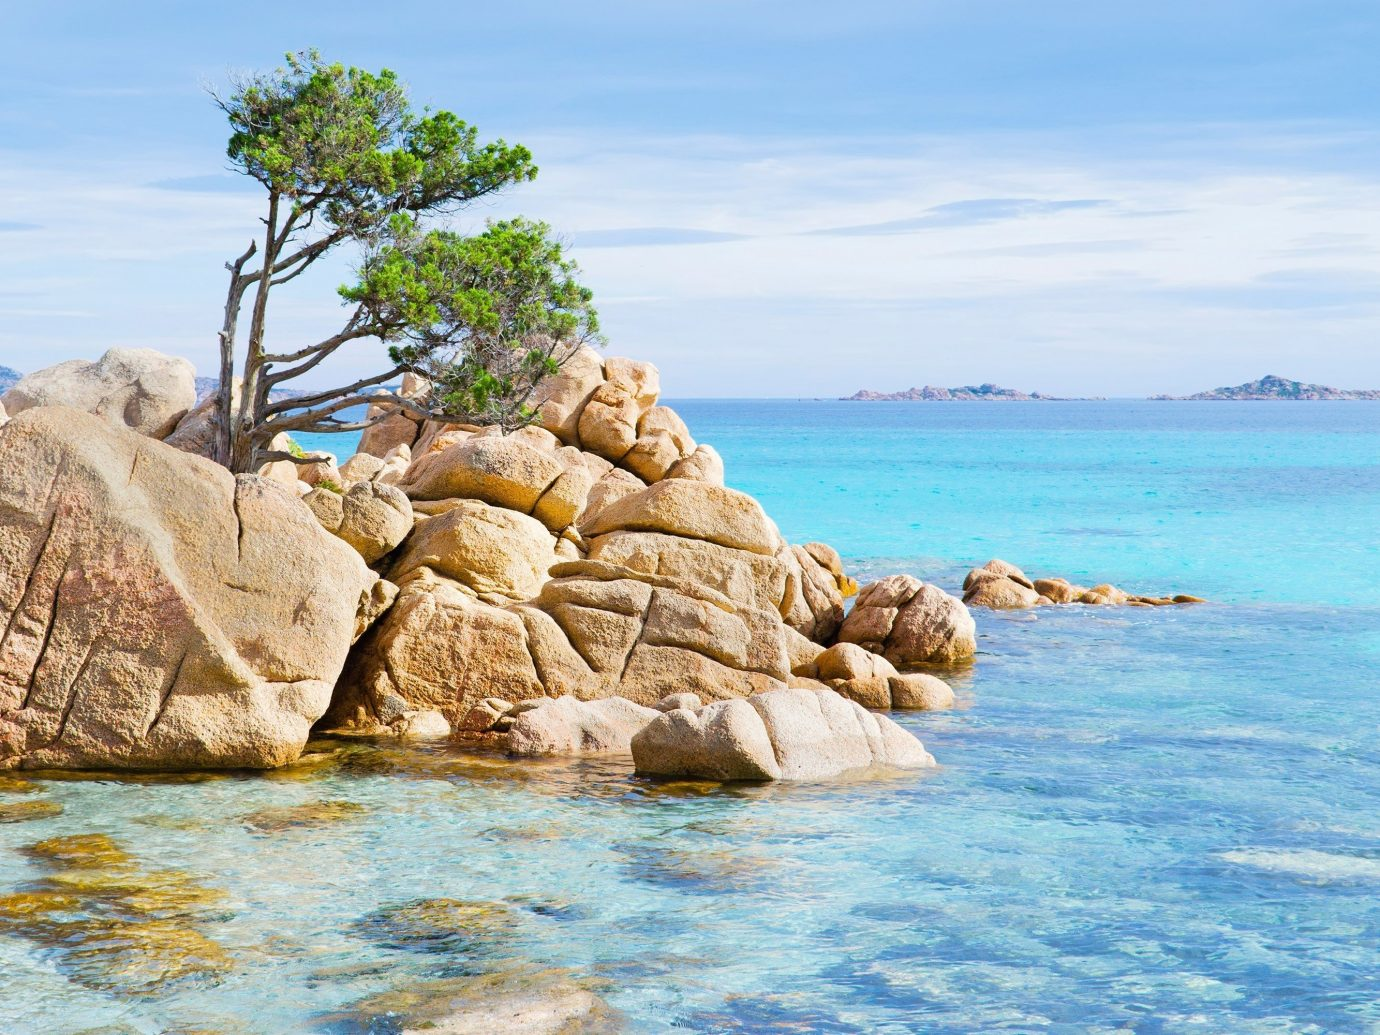 Offbeat sky water outdoor rock shore Nature Sea Coast body of water Beach Ocean vacation bay cove cape islet cliff terrain sand material